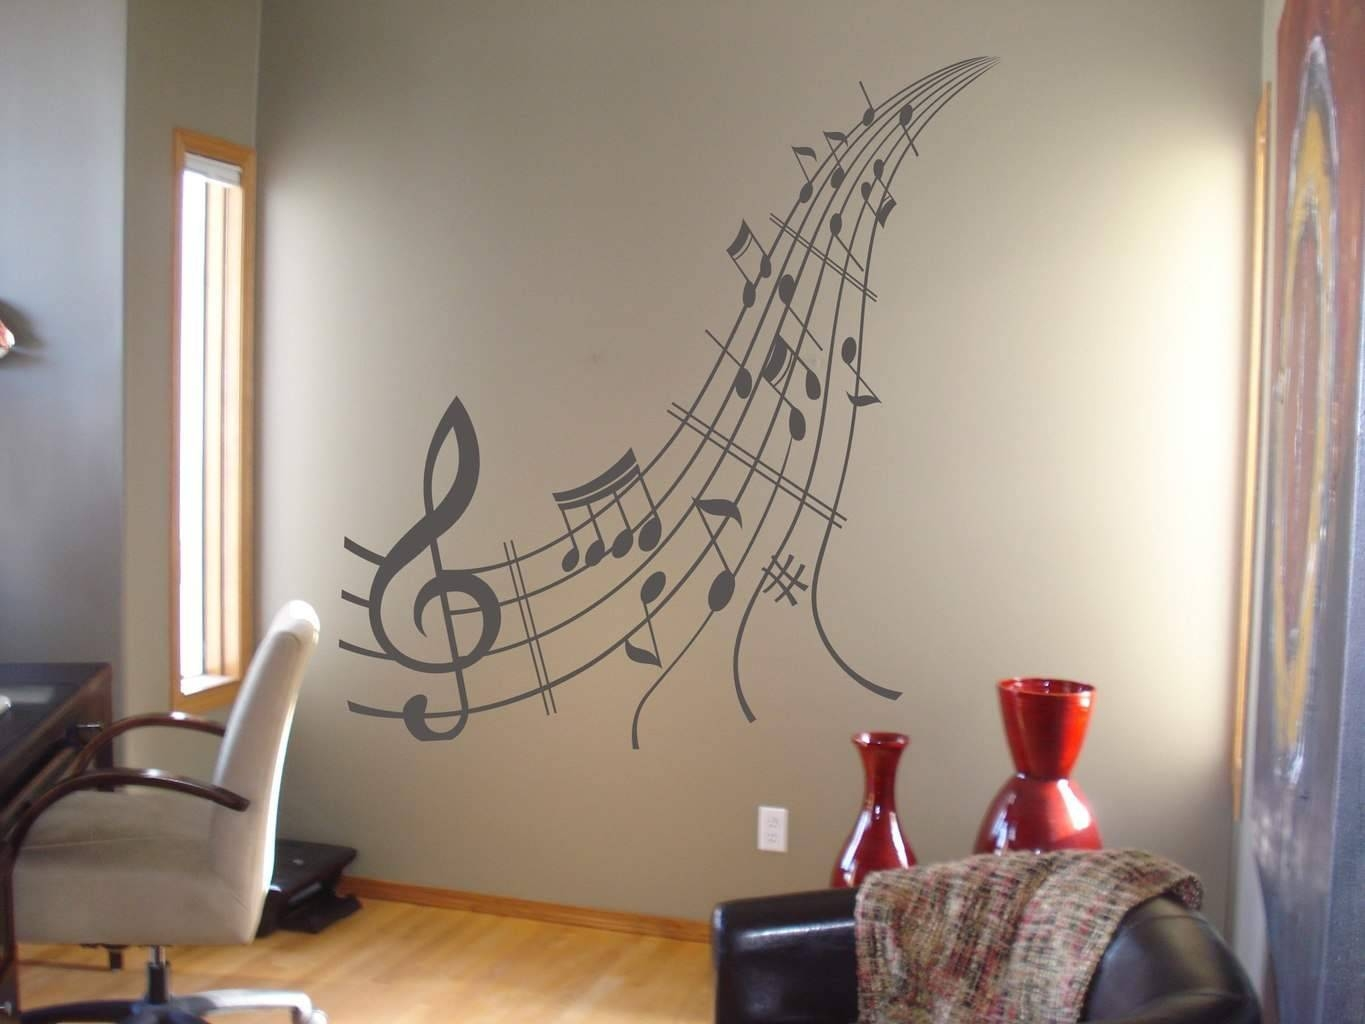 Music Notes Wall Art Decal | Music Wall Decal Sticker Pertaining To Best And Newest Music Note Wall Art (View 14 of 20)